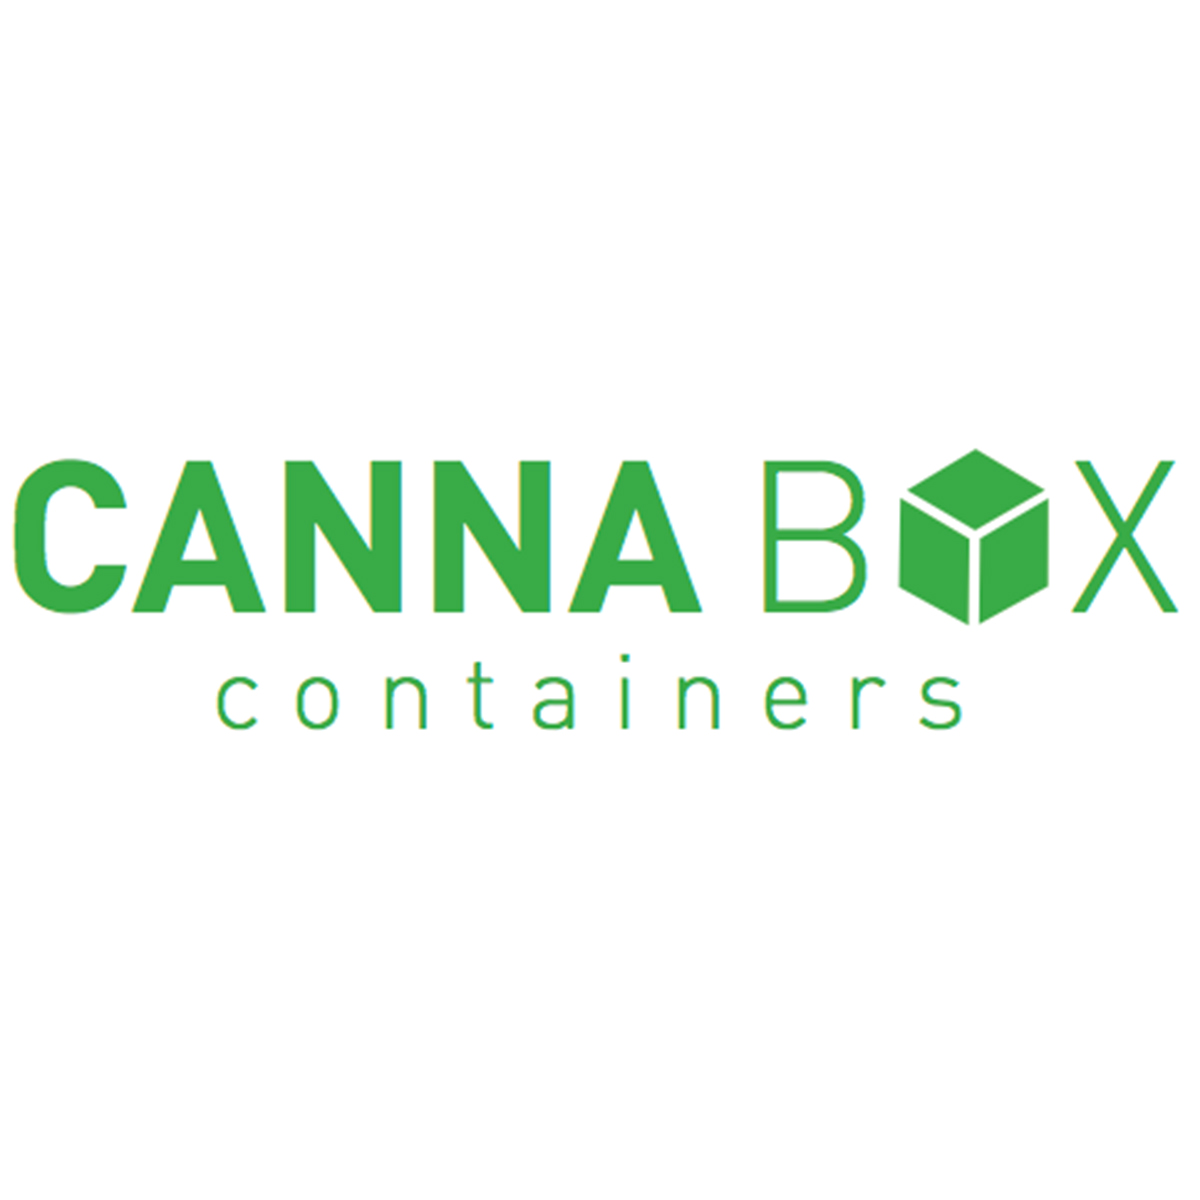 CannaBox Containers logo